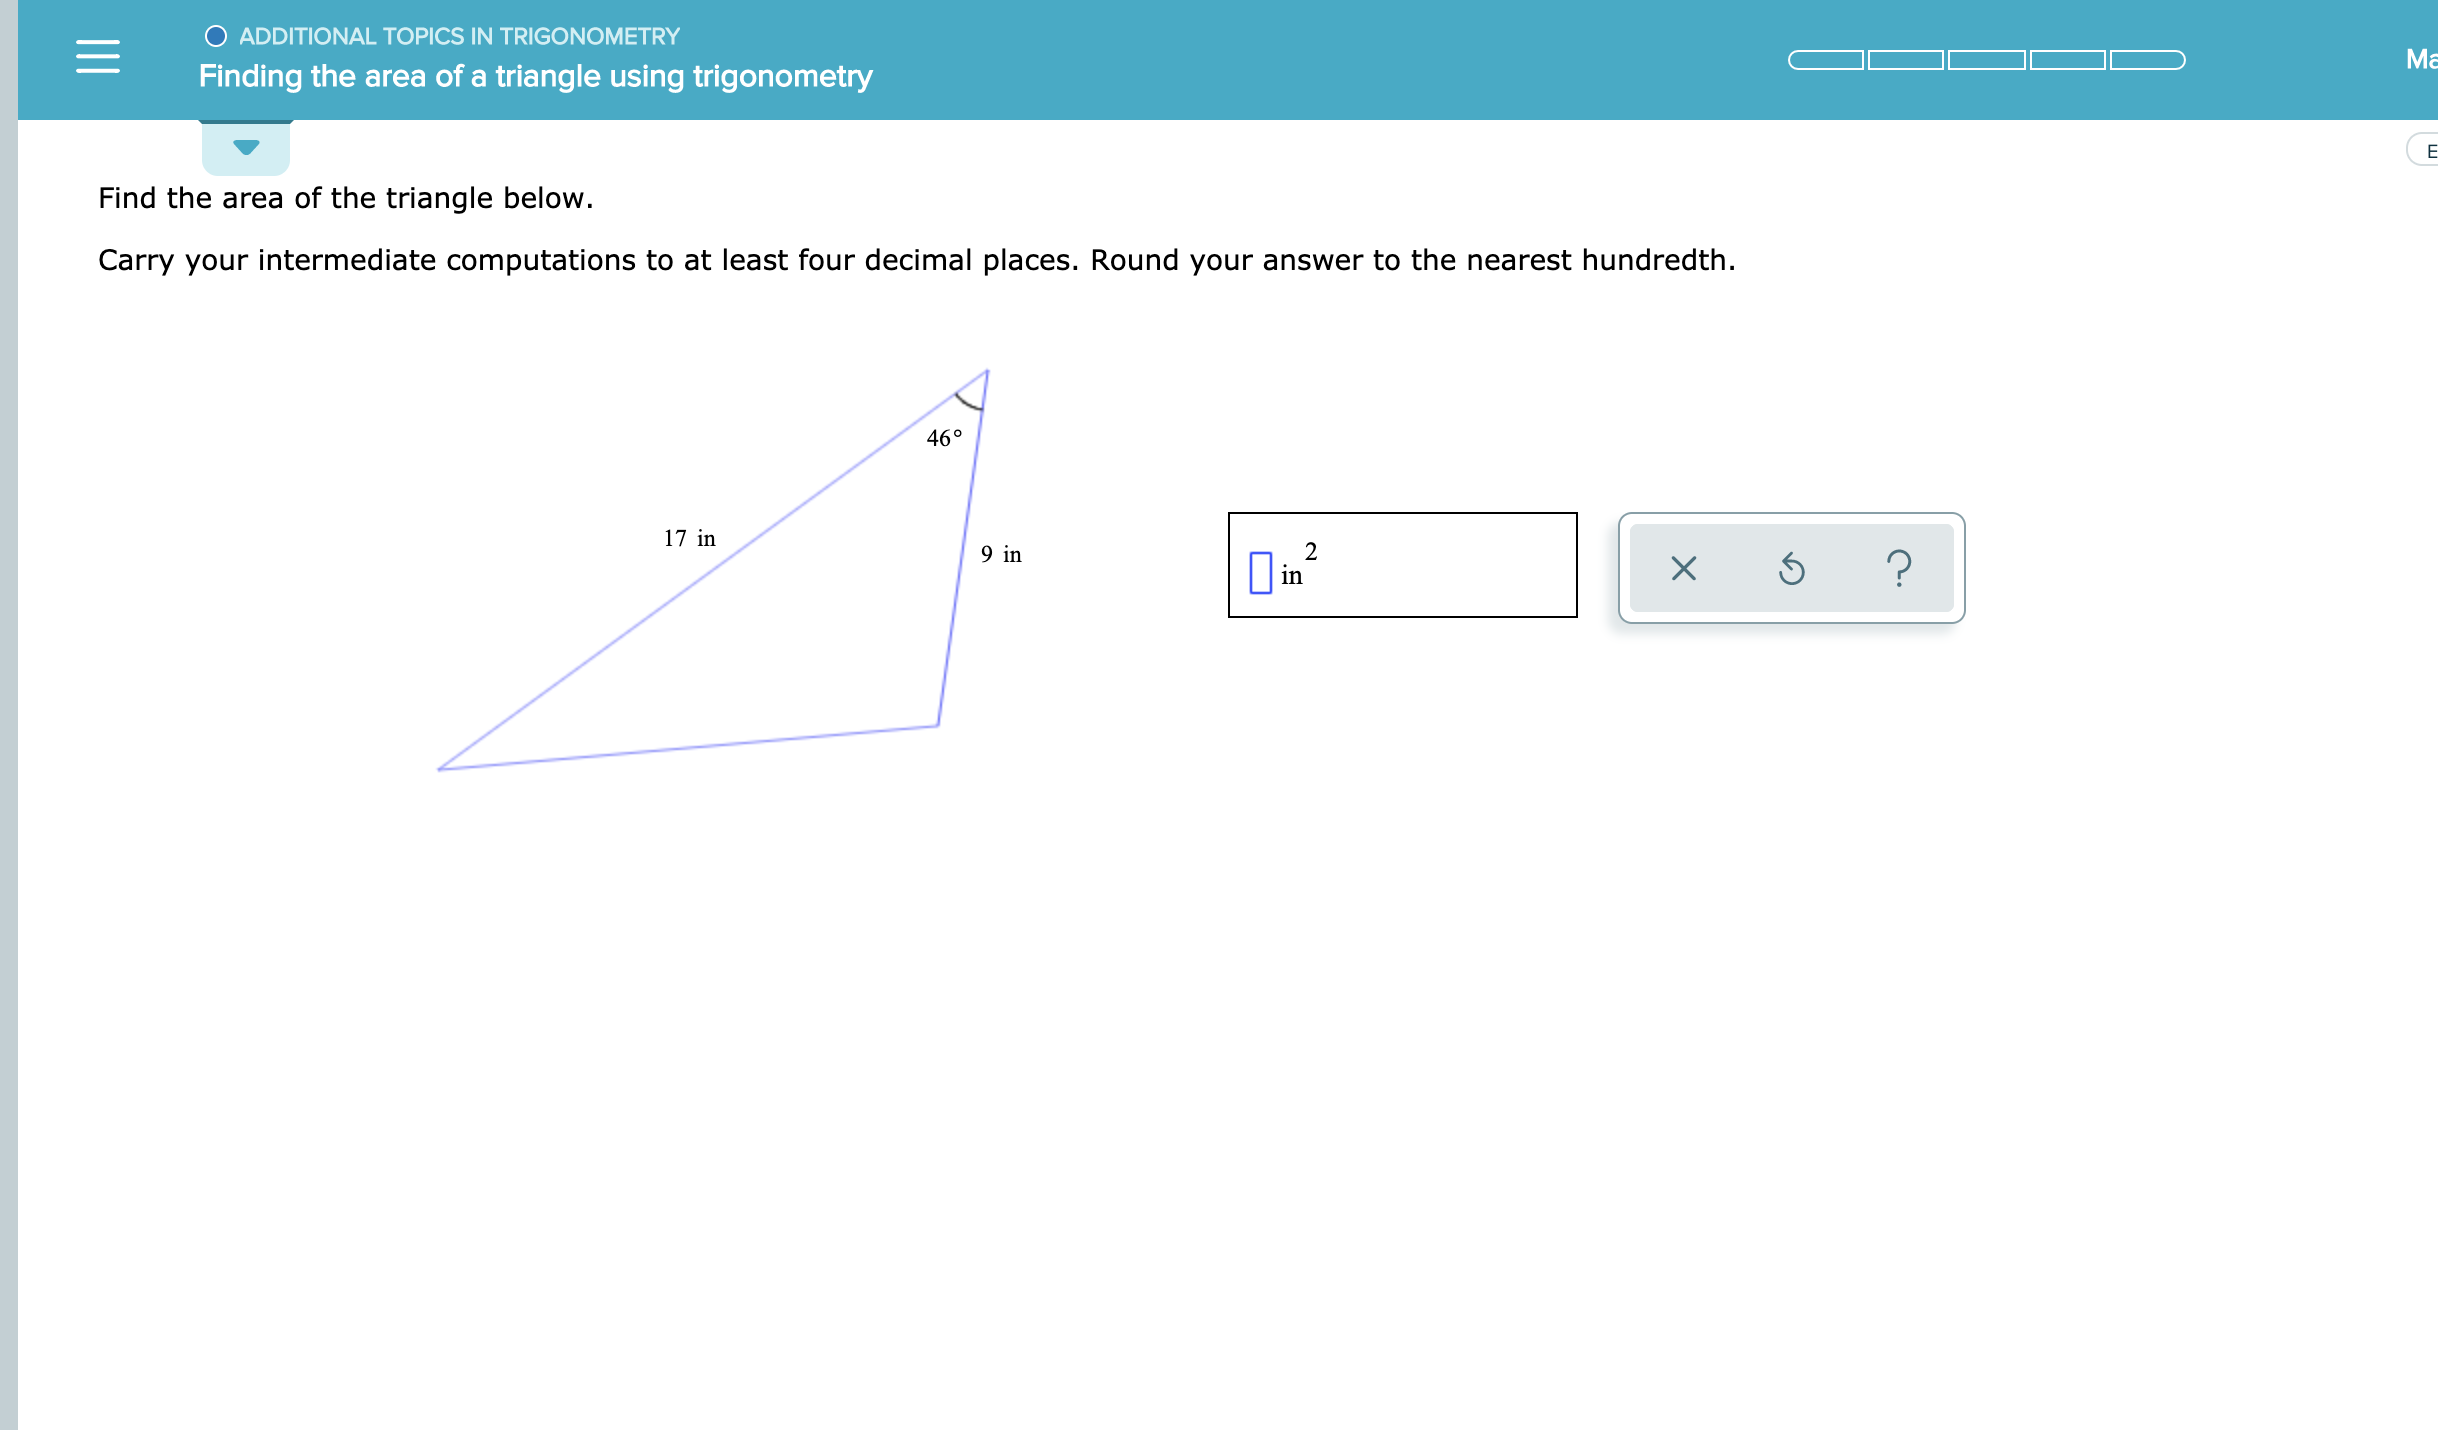 O ADDITIONAL TOPICS IN TRIGONOMETRY Ма Finding the area of a triangle using trigonometry Е Find the area of the triangle below. Carry your intermediate computations to at least four decimal places. Round your answer to the nearest hundredth 46° 17 in 2 in 9 in ? X 1I